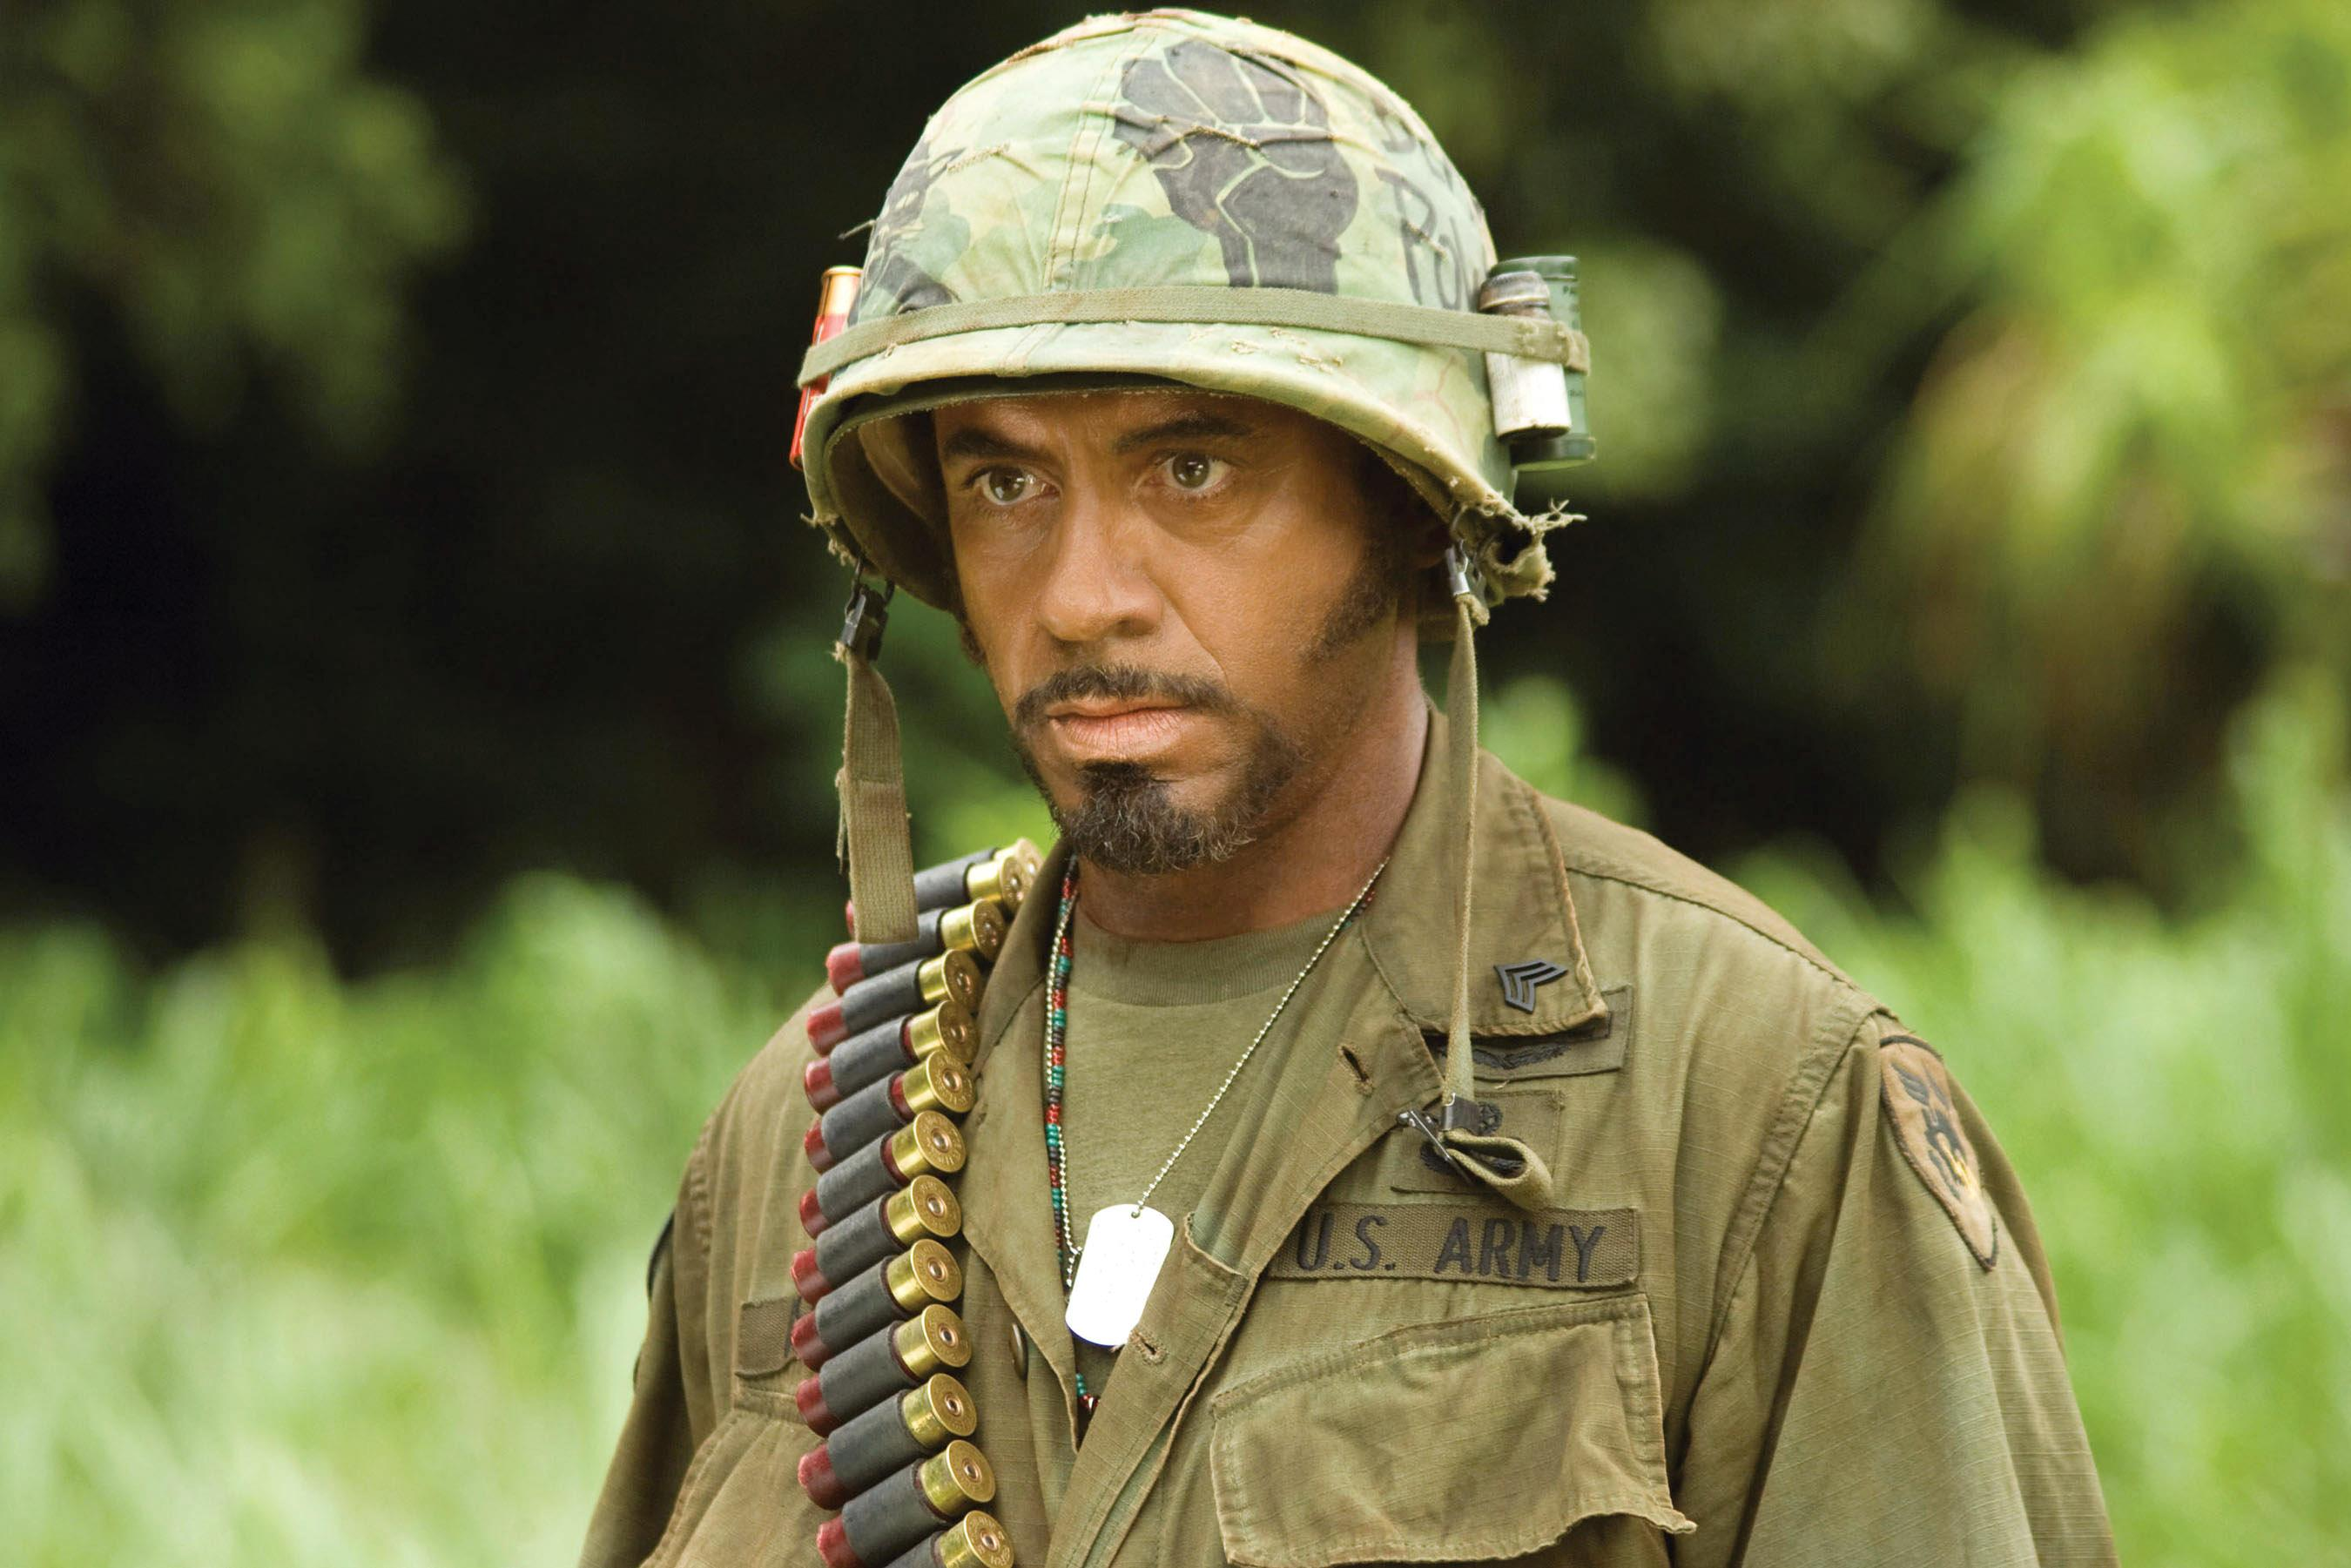 Robert Downey Jr. on 'Tropic Thunder': '90 percent of my black friends' thought it 'was great'